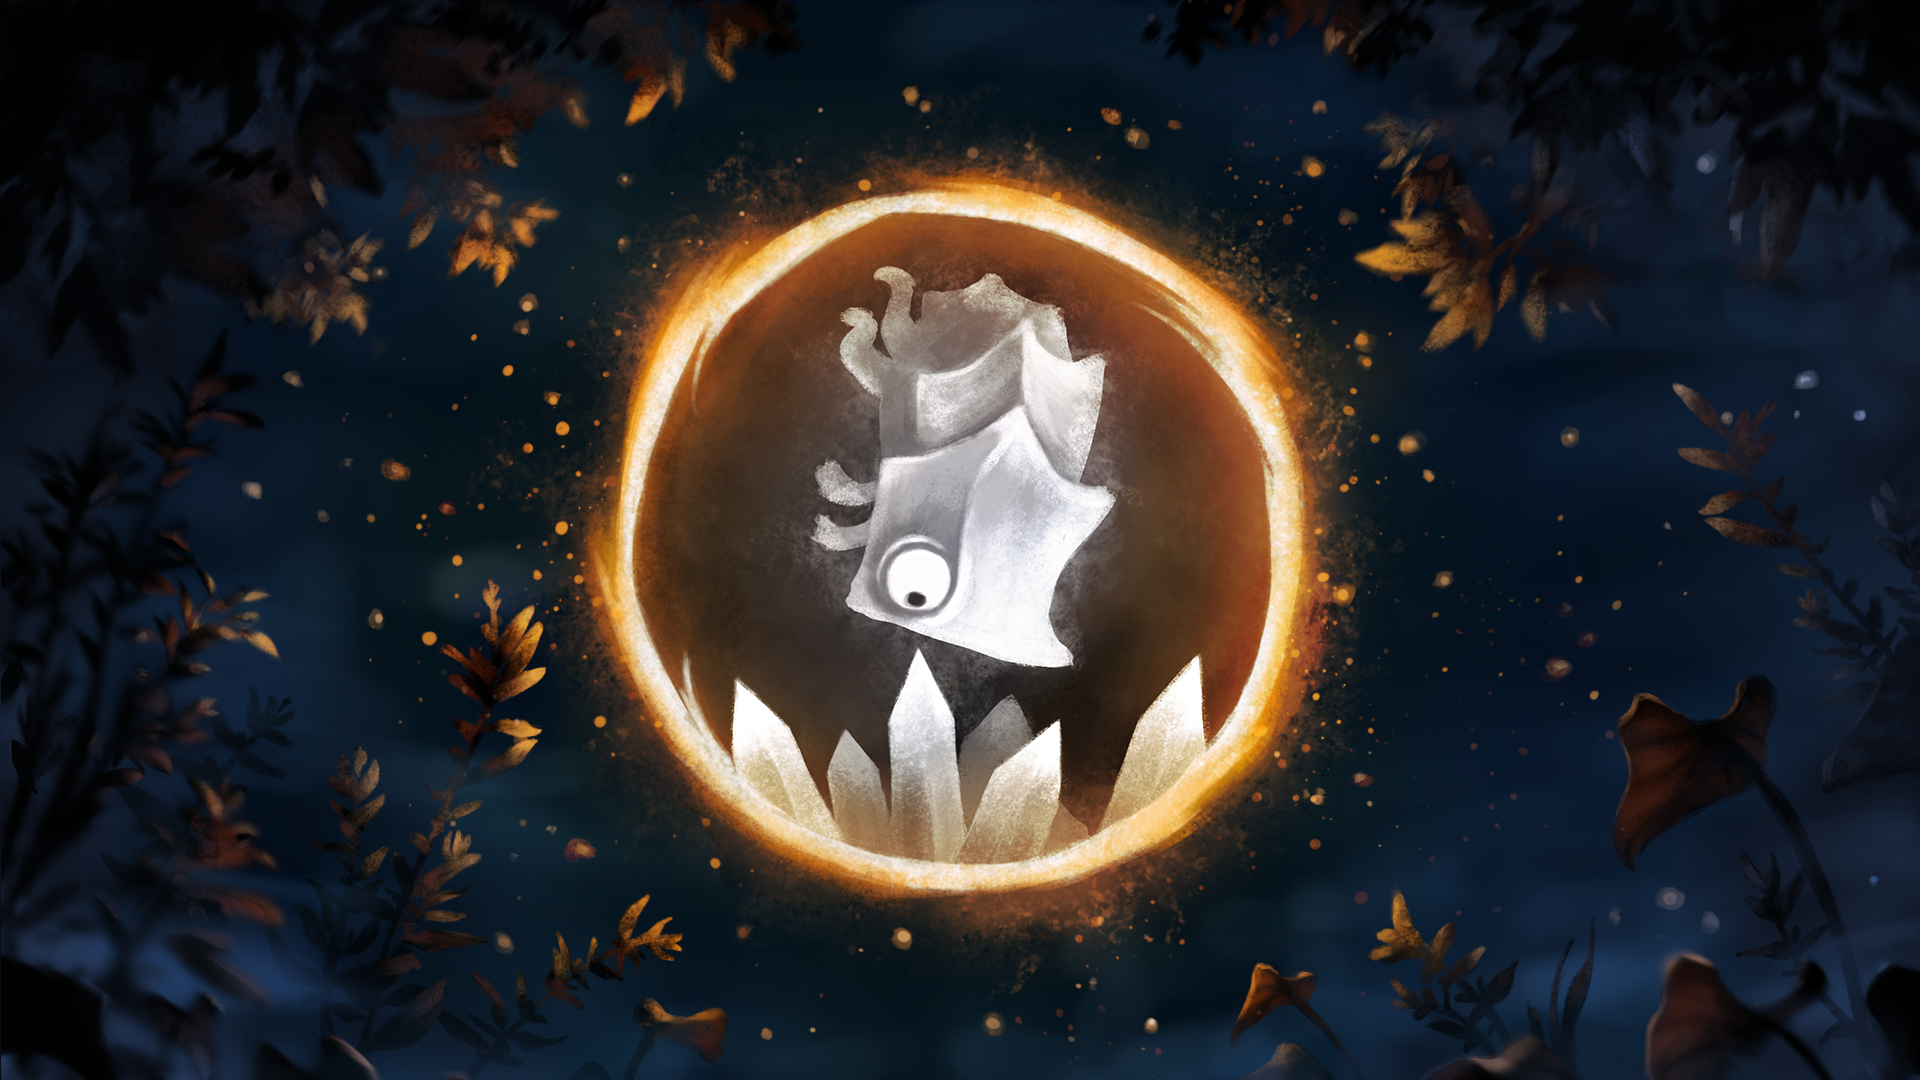 Self Destruction achievement for Ori and the Blind Forest on Nintendo Switch